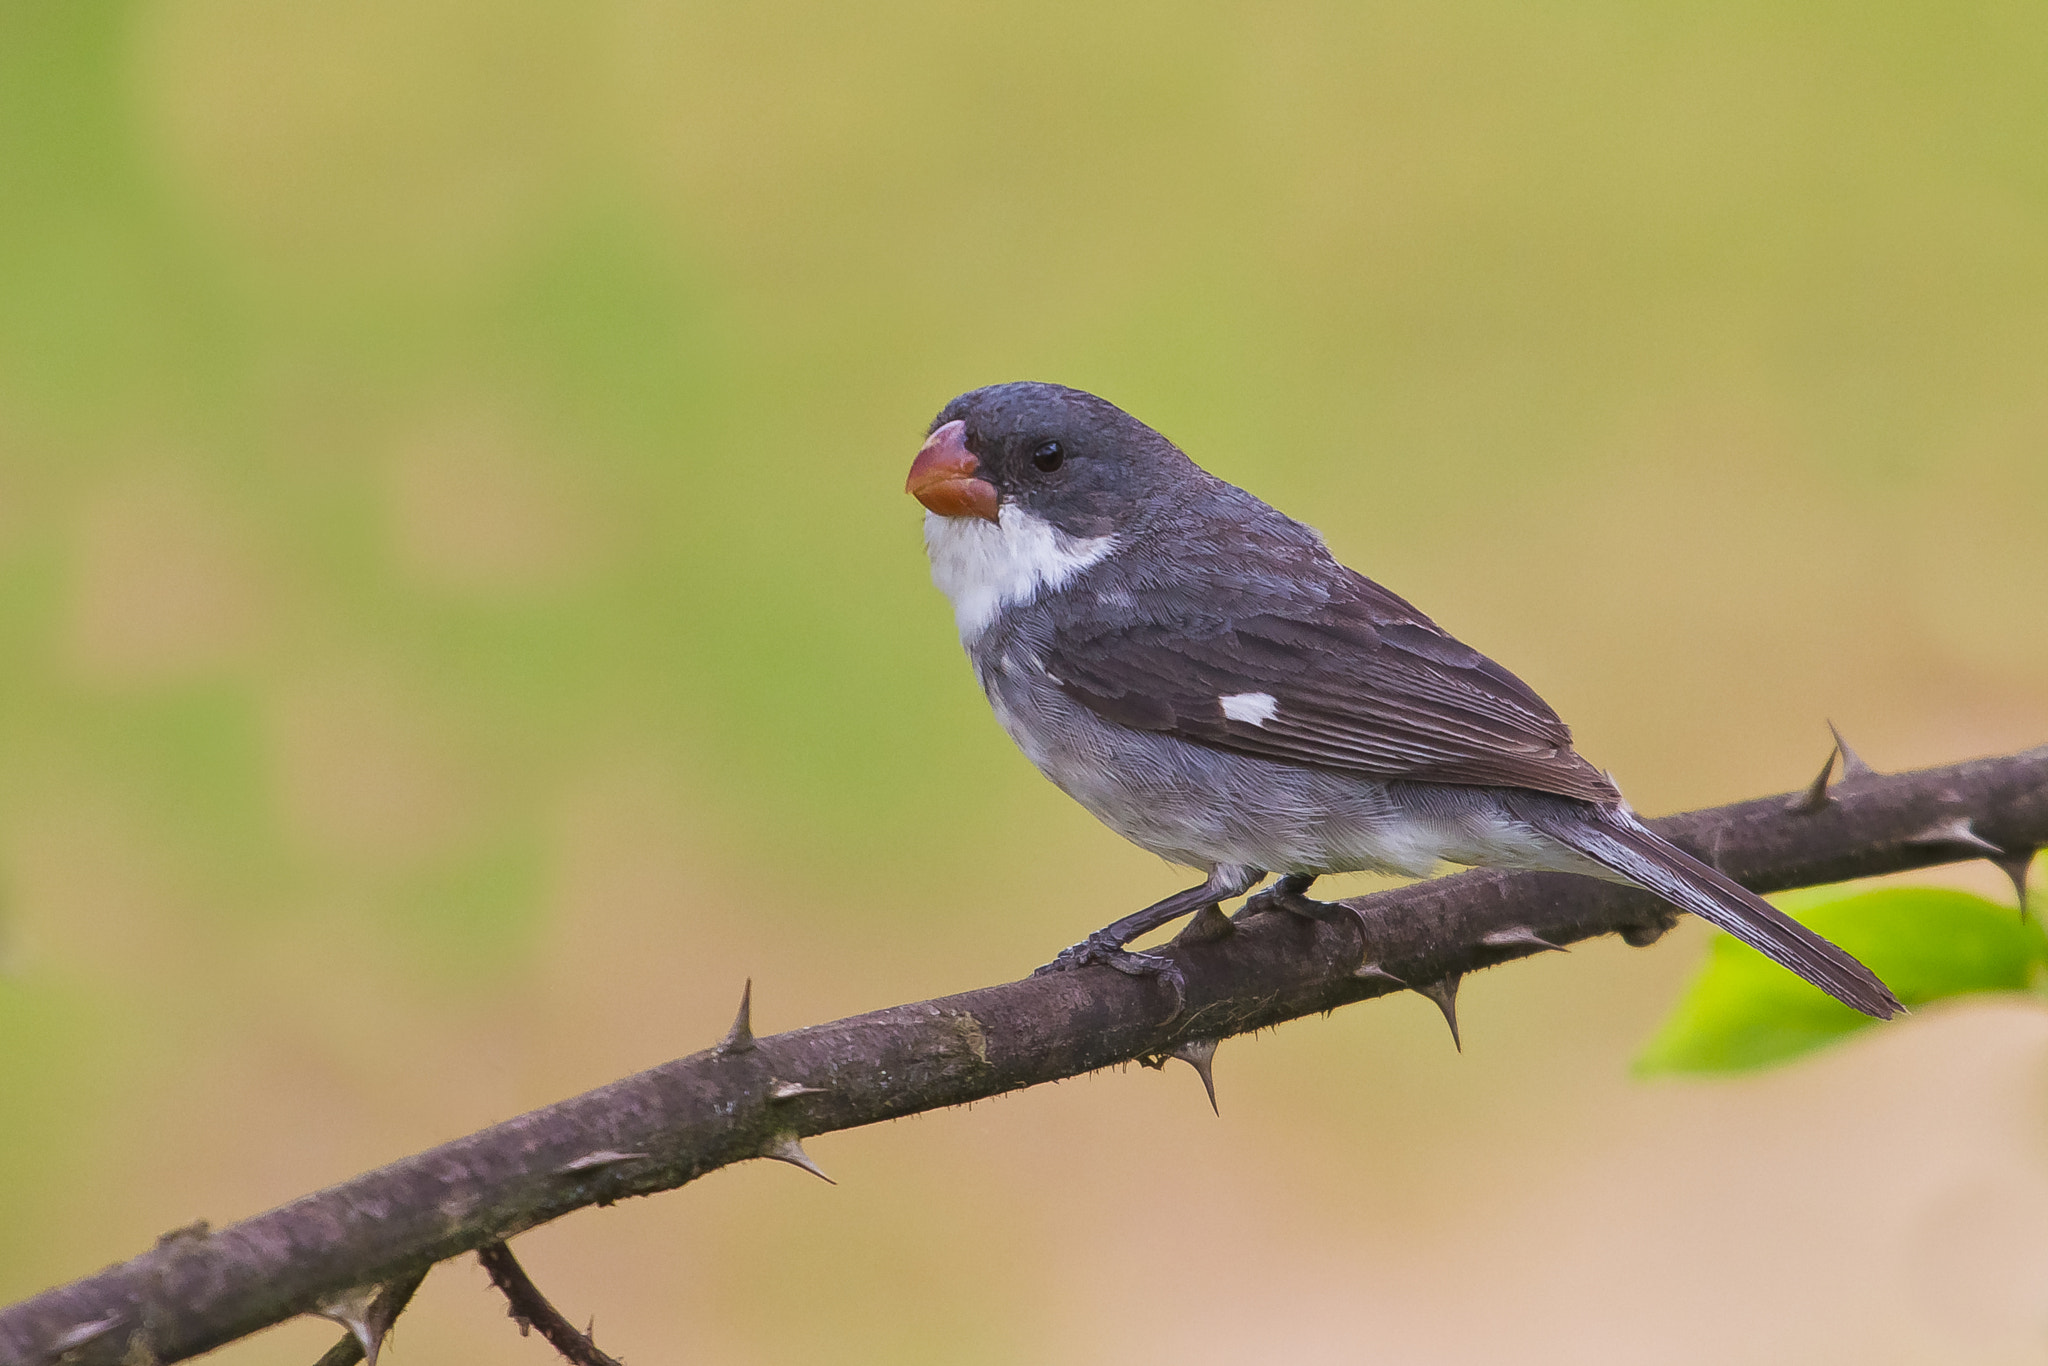 Photograph White-bellied Seedeater (Sporophila leucoptera) by Bertrando Campos on 500px